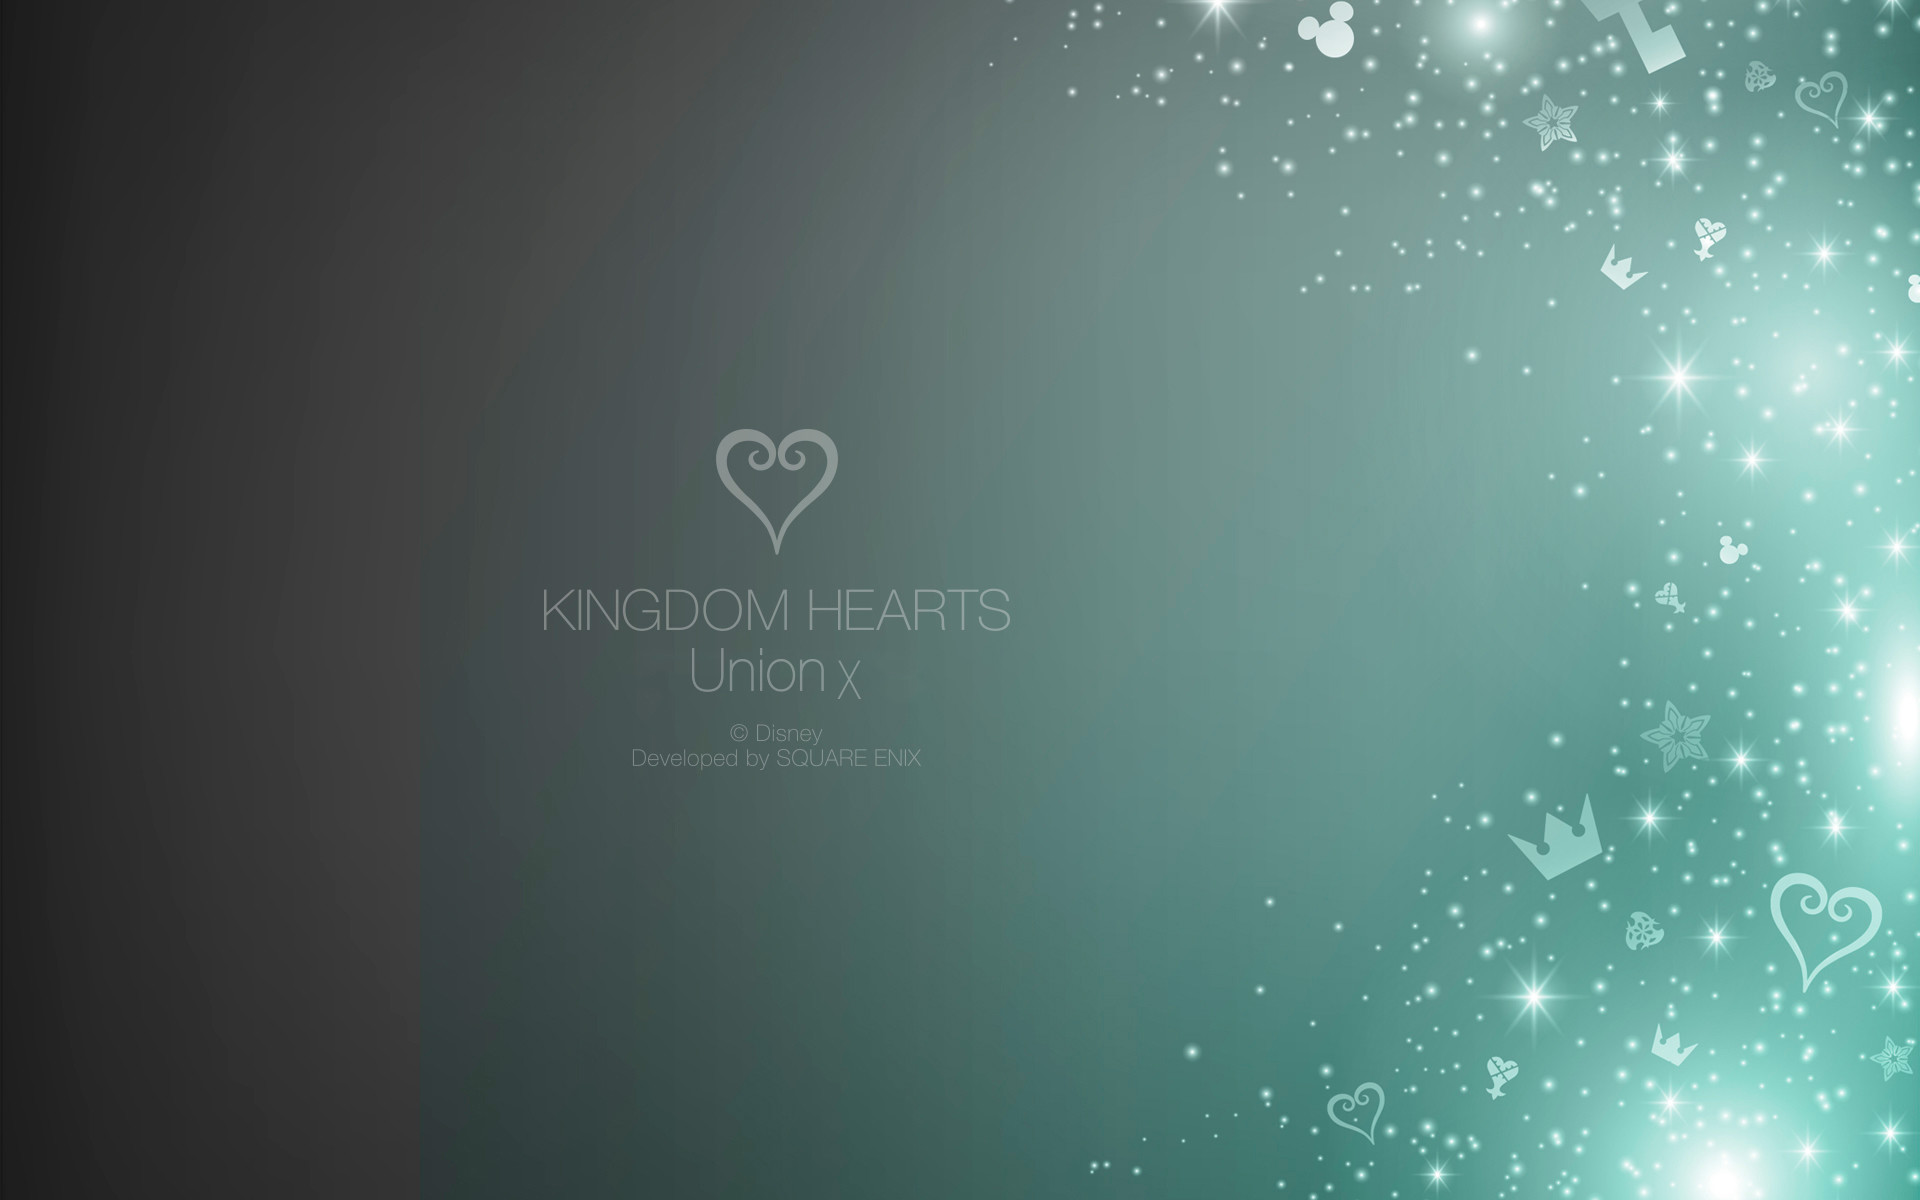 1920x1200 Kingdom Hearts Union X Wallpapers. Android. iPhone